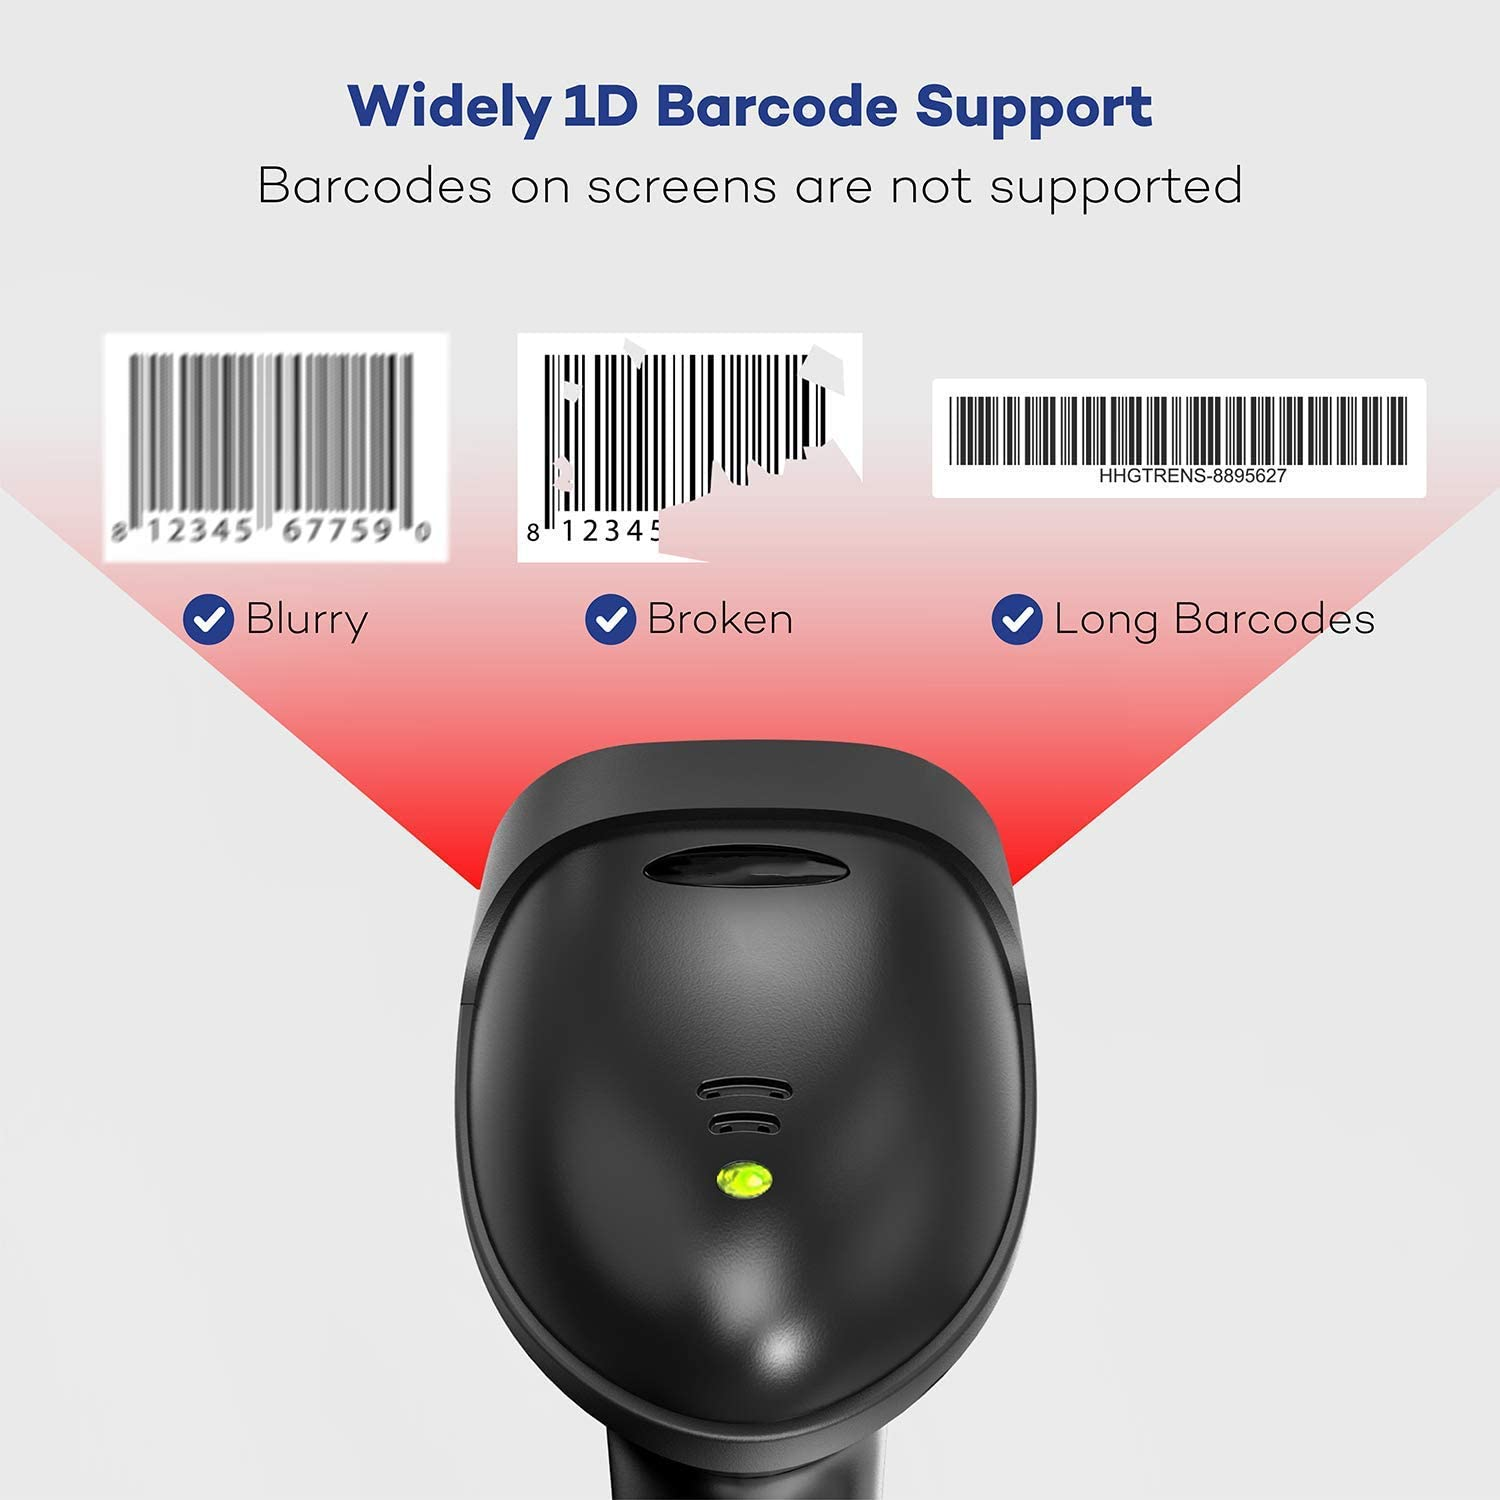 Fast Auto Scan Support Windows//Mac Os//Android System 2020 Barcode Scanner with Stand Wired USB Handheld Bar Code Scanner for Computer Work Excel and Other Software